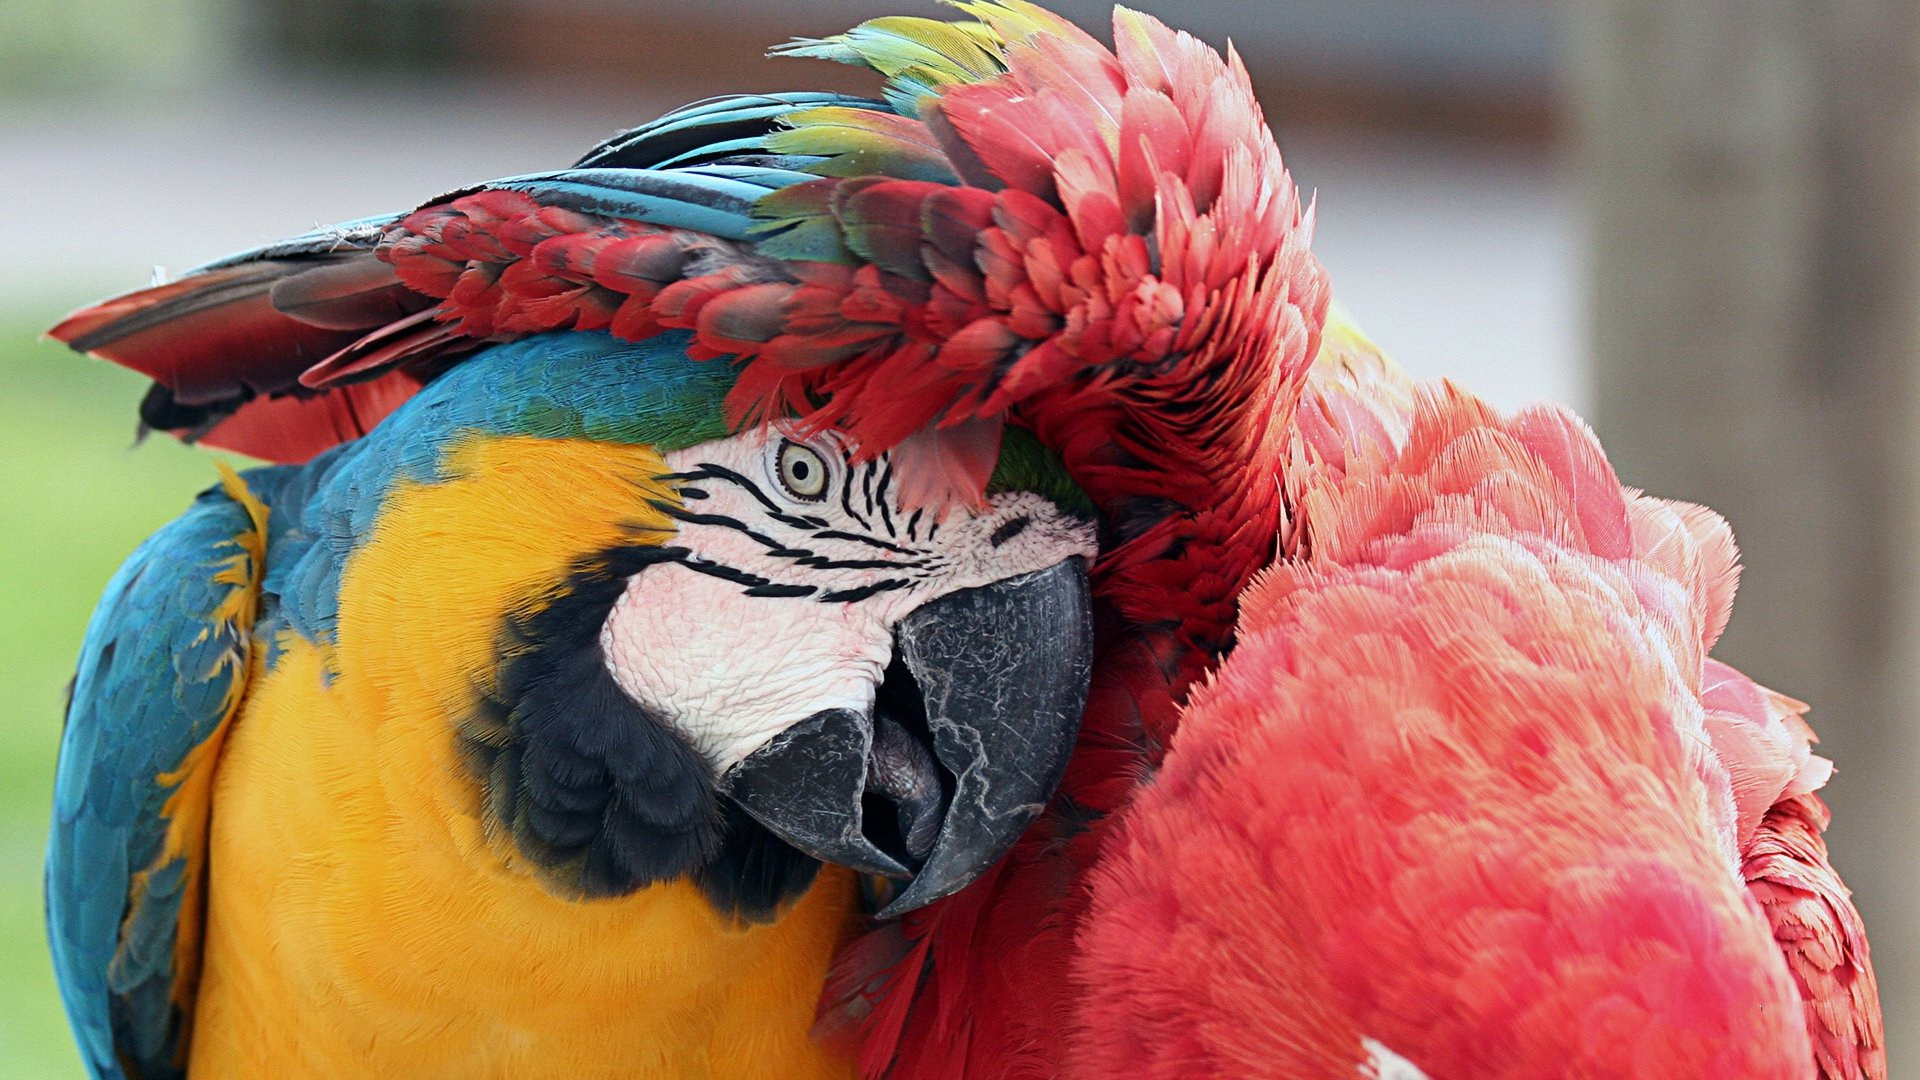 Best Macaw wallpaper ID:46283 for High Resolution hd 1080p computer